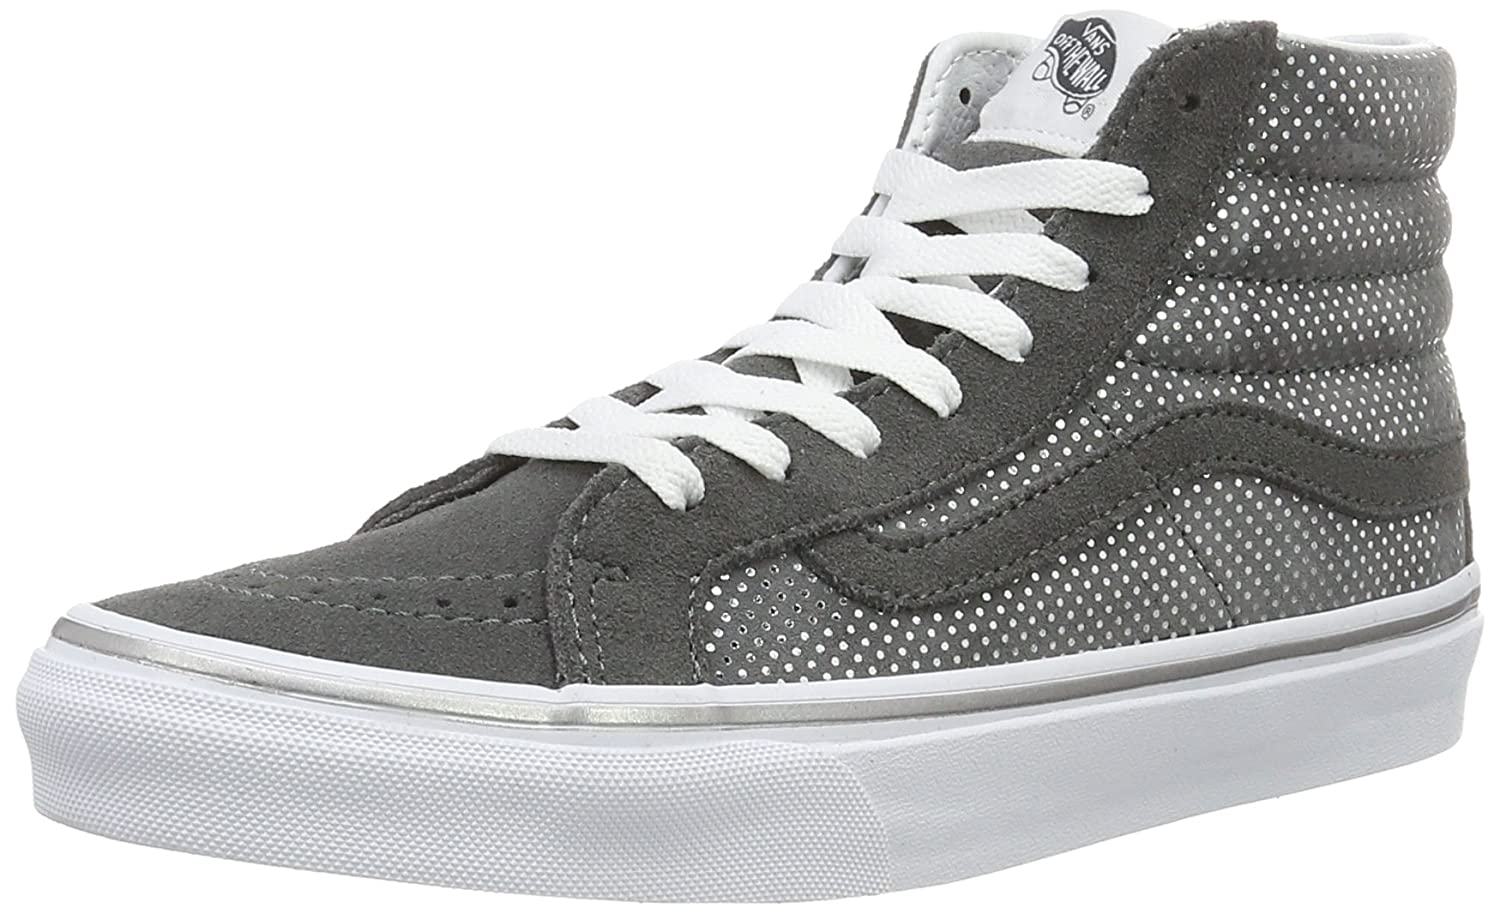 Vans Damen UA Sk8-Hi Slim Hohe Sneakers, Bay/True White, 37 EU  365 EU|Grau (Metallic Dots Dark Gray/Pewter)